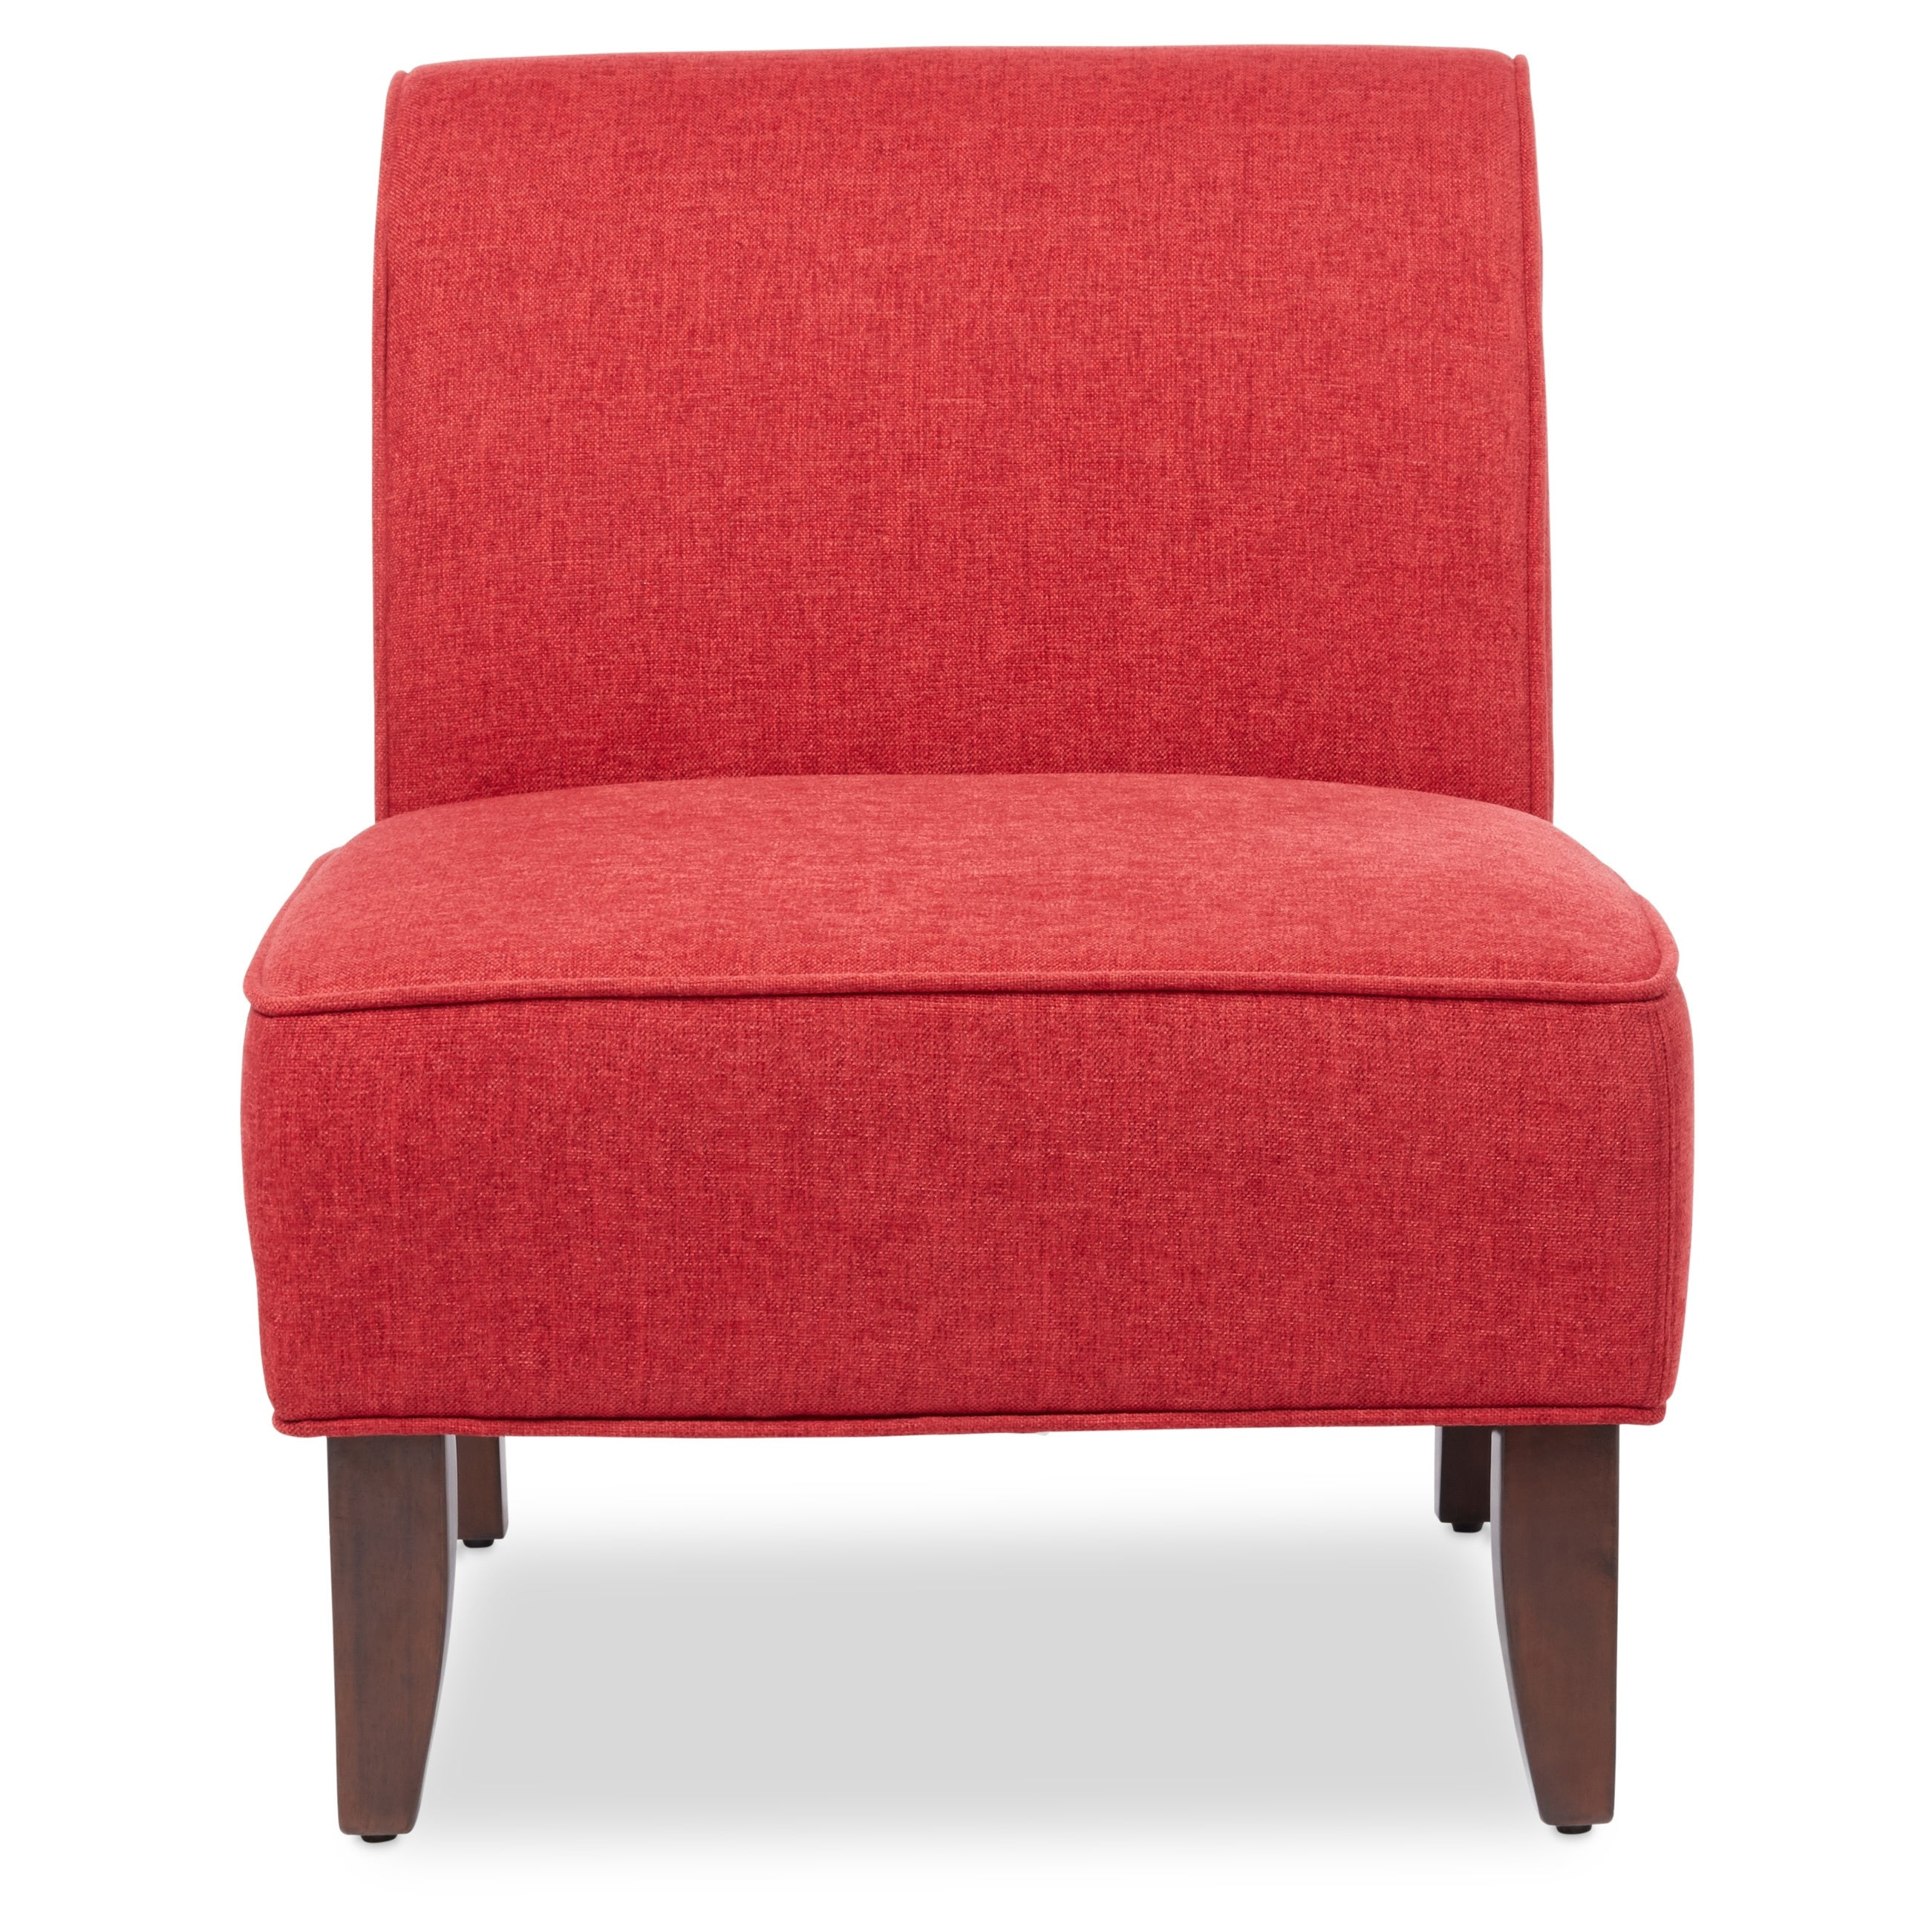 Exceptionnel Shop Laurel Creek Sadie Slipper Red Accent Chair   Free Shipping Today    Overstock.com   11735648